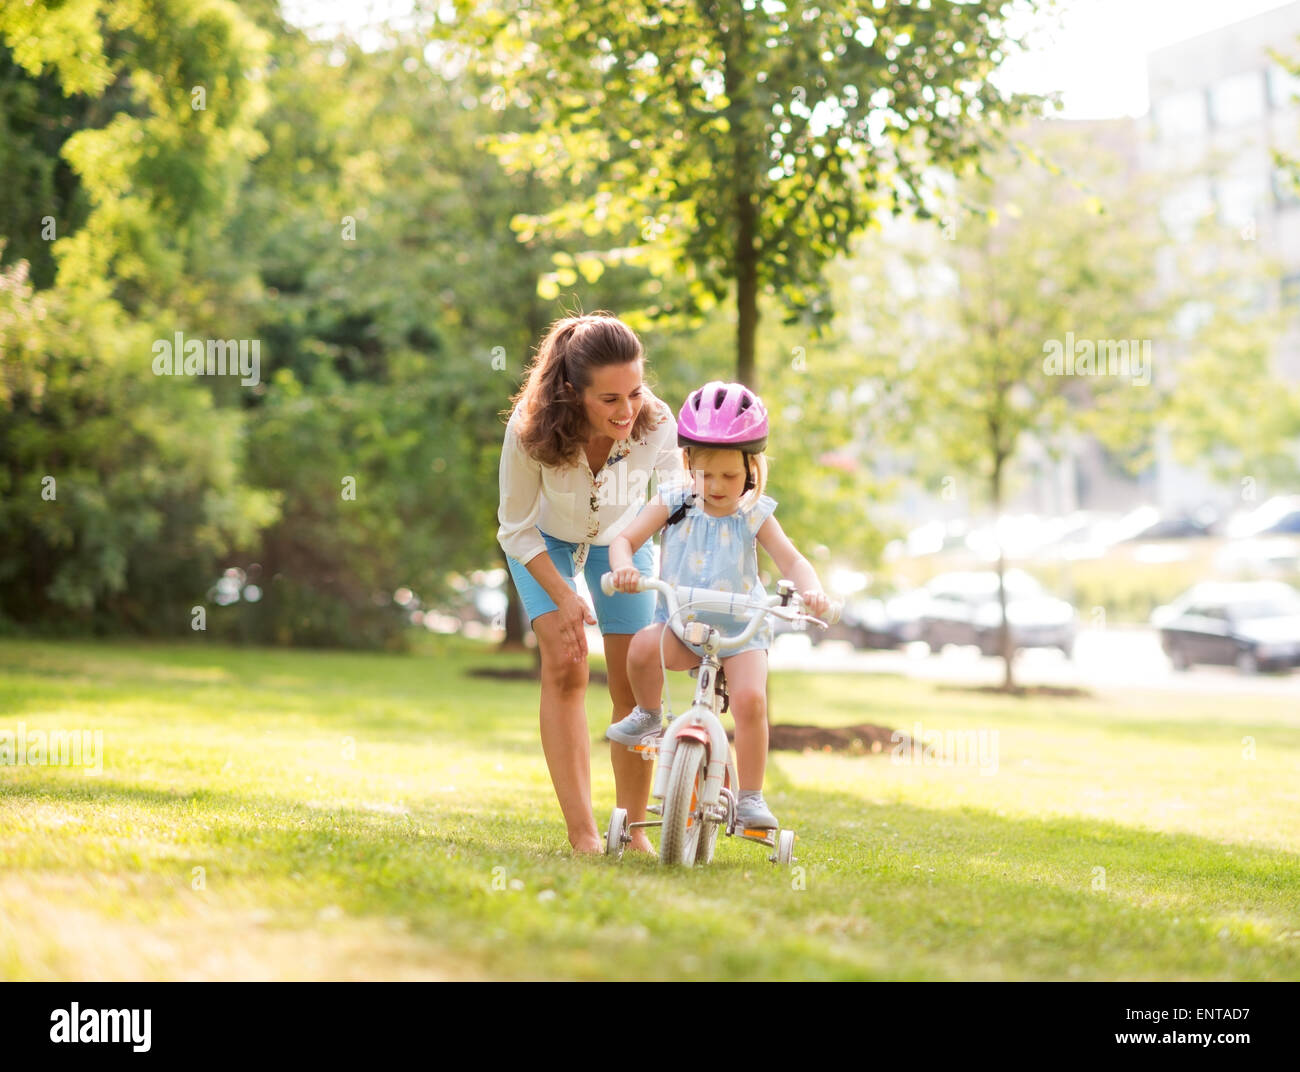 In a sunny city park, a mother gently pushes her blonde, blue-eyed daughter forward with encouragement as she learns - Stock Image